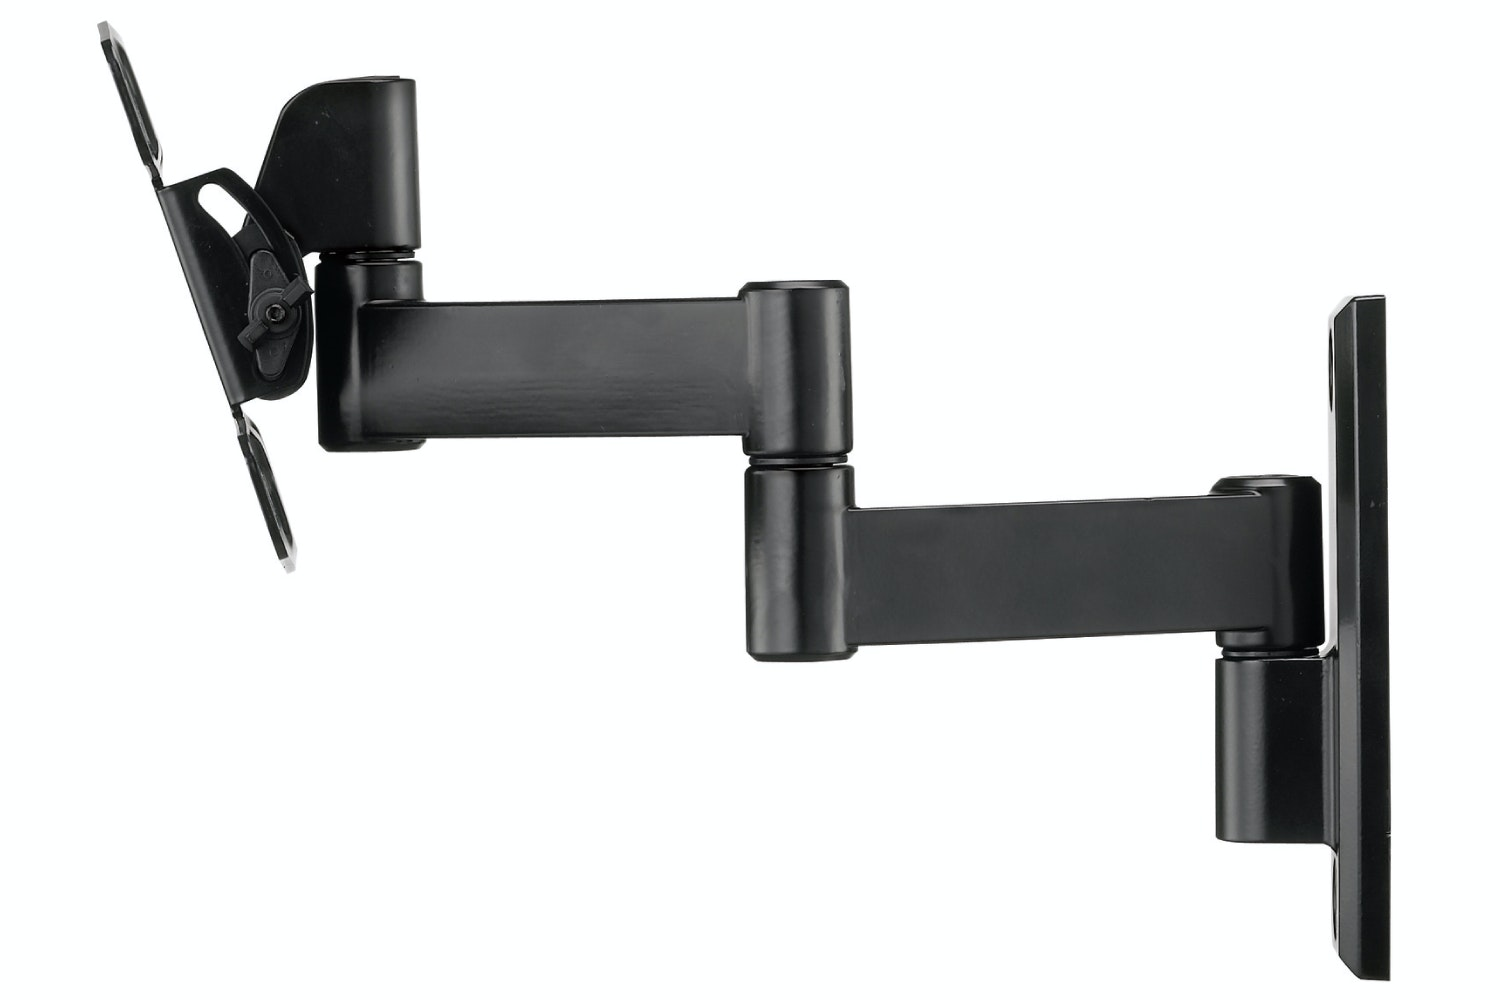 Sanus Premium Series Full-Motion Wall Mount for Flat Panel TVs and Monitors up to 27"